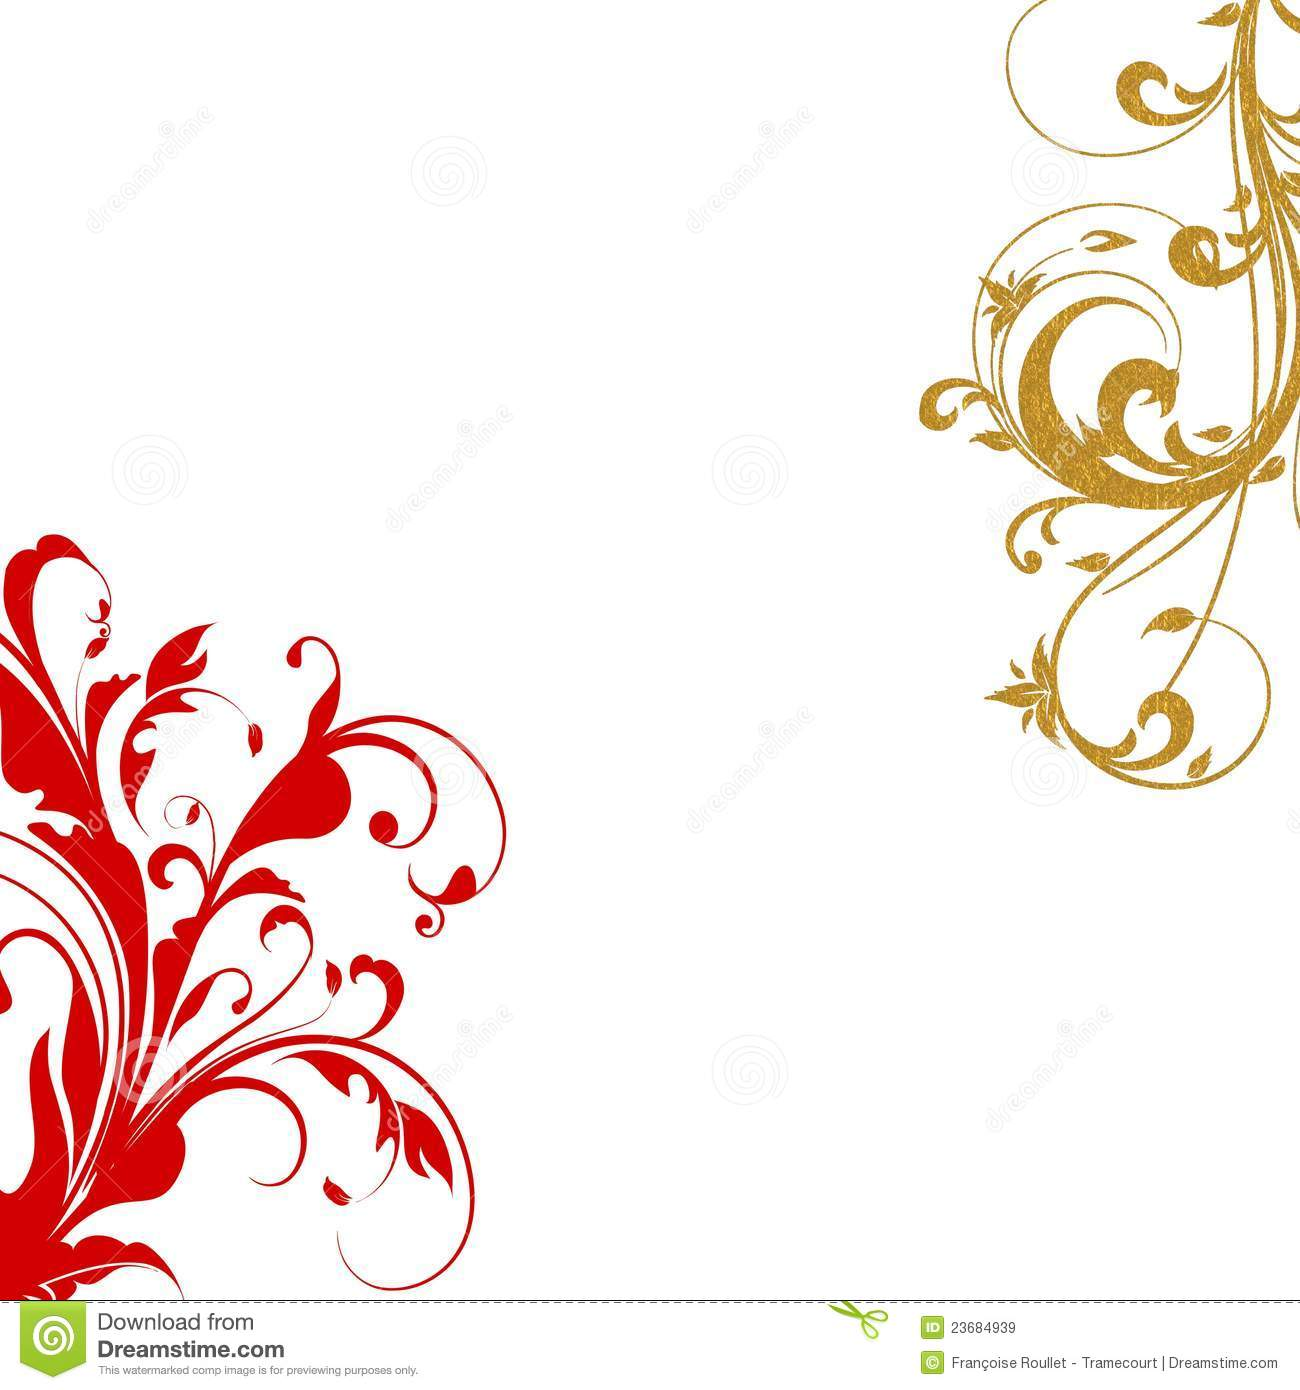 Elegant Swirl Design Border Stock Illustration